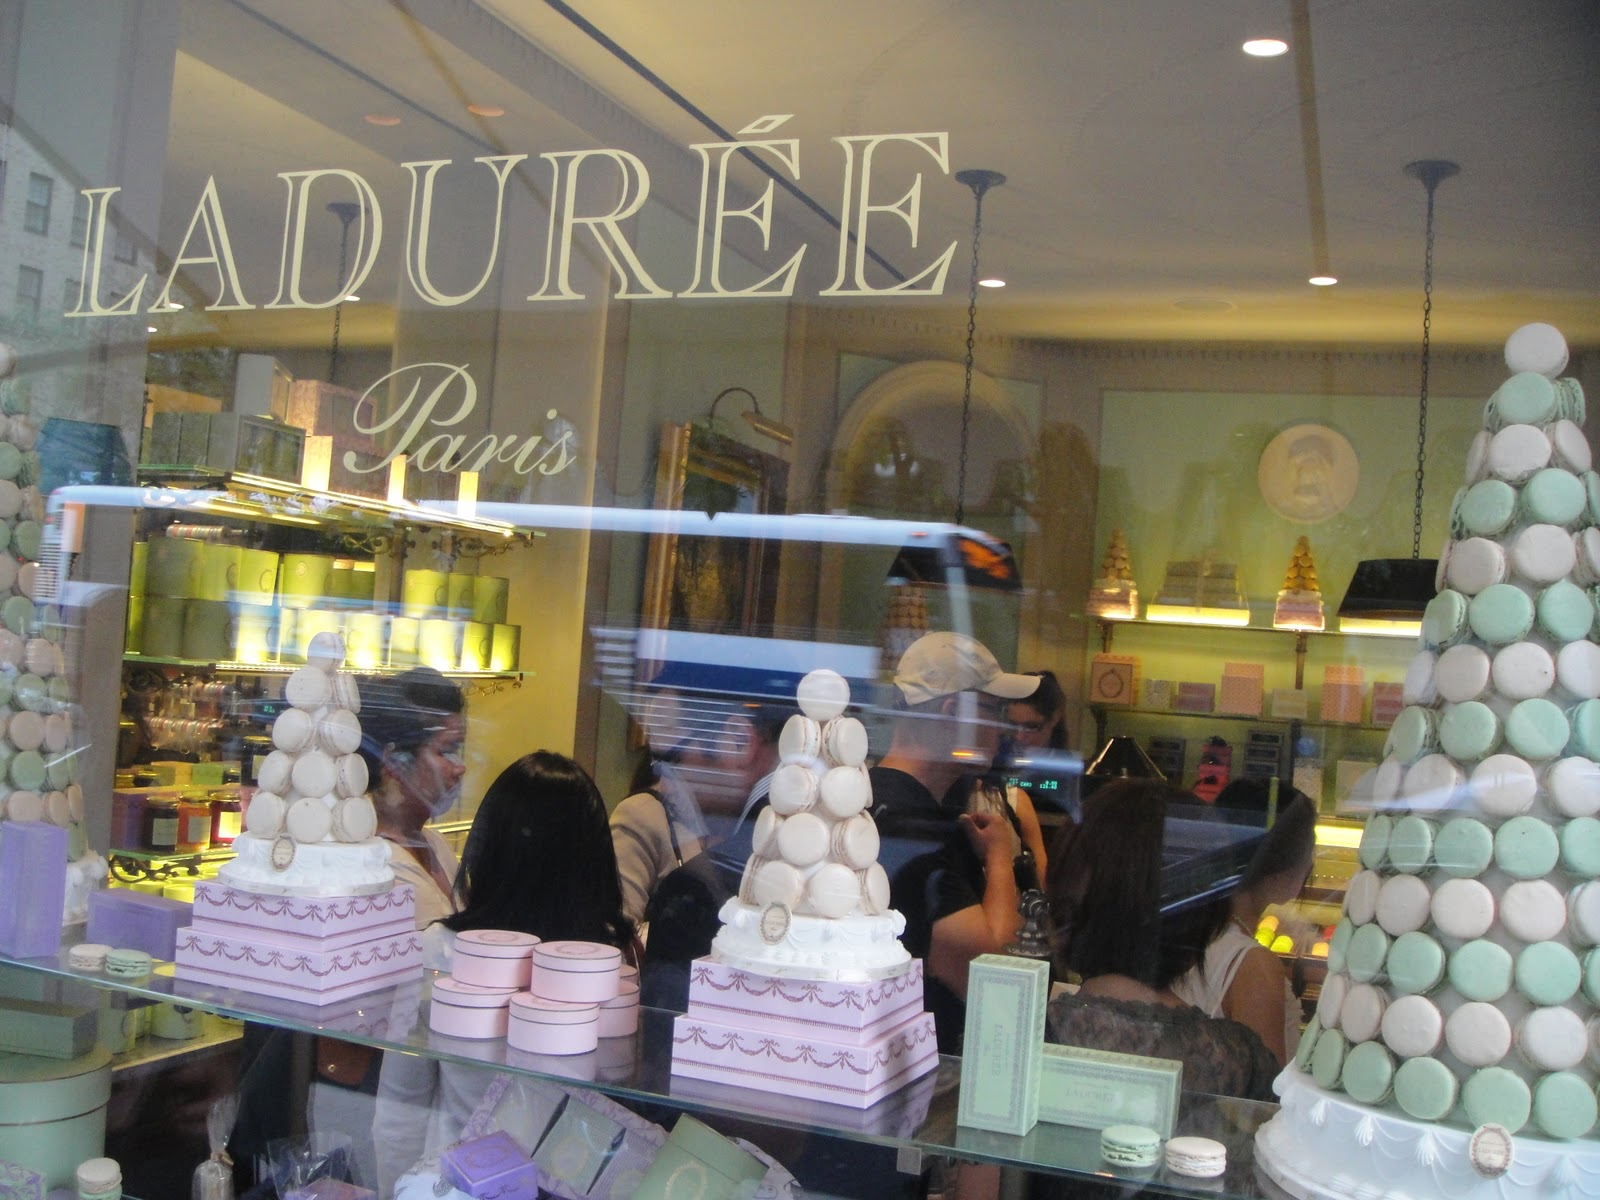 FOODYHOLIC'S Choice: LADUREE - French macarons